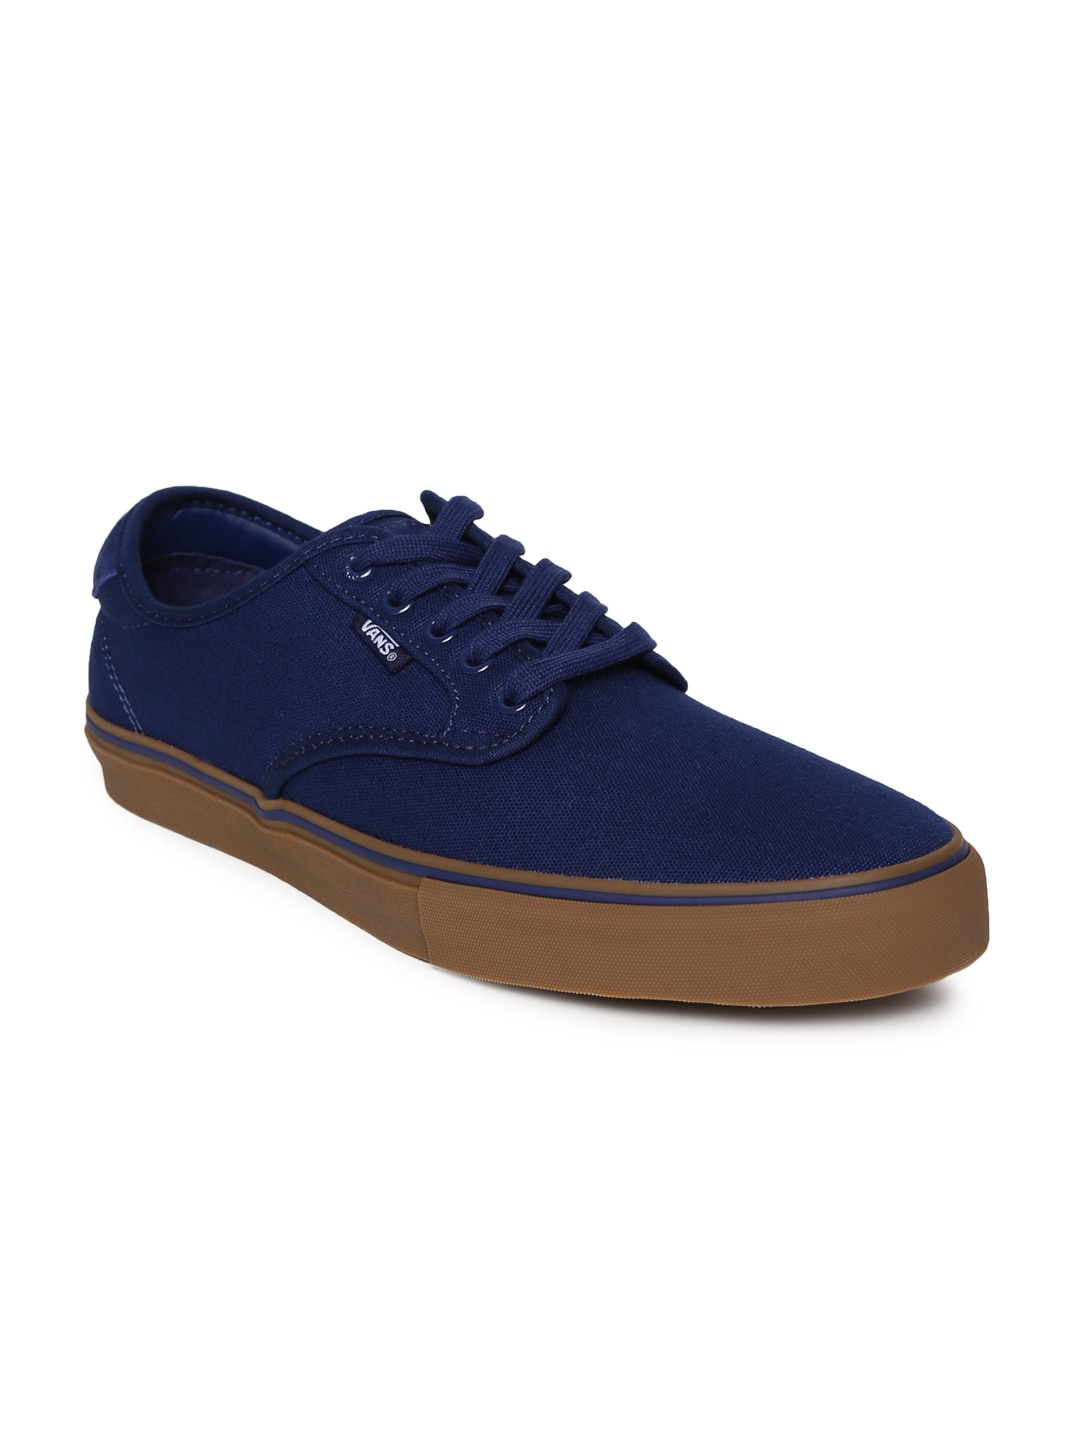 cdc1bcd14c6b Vans - Buy Vans Footwear